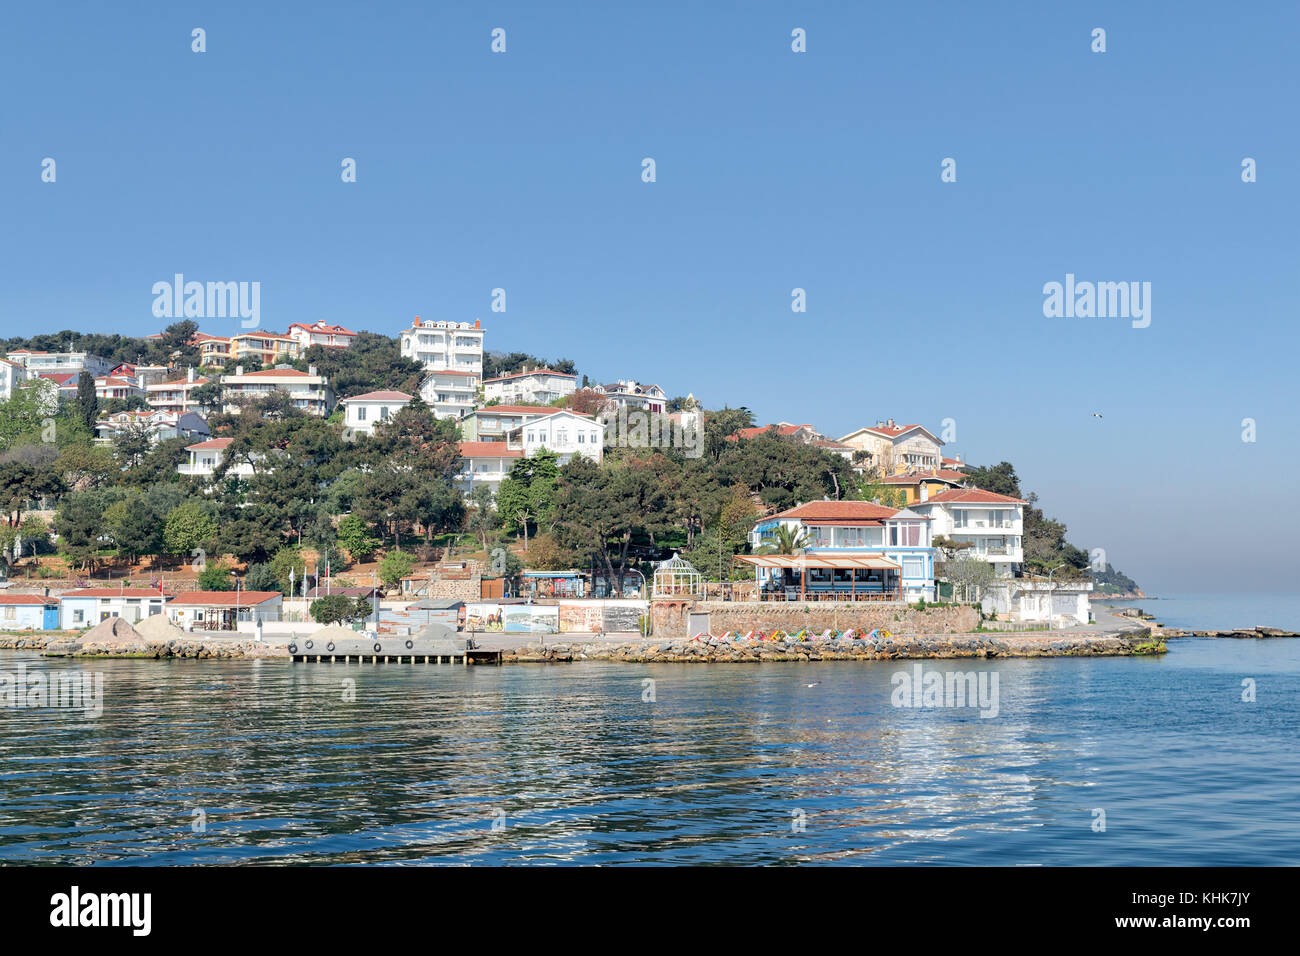 View of Burgazada island from the sea with summer houses. The island is the third largest one of four islands named - Stock Image